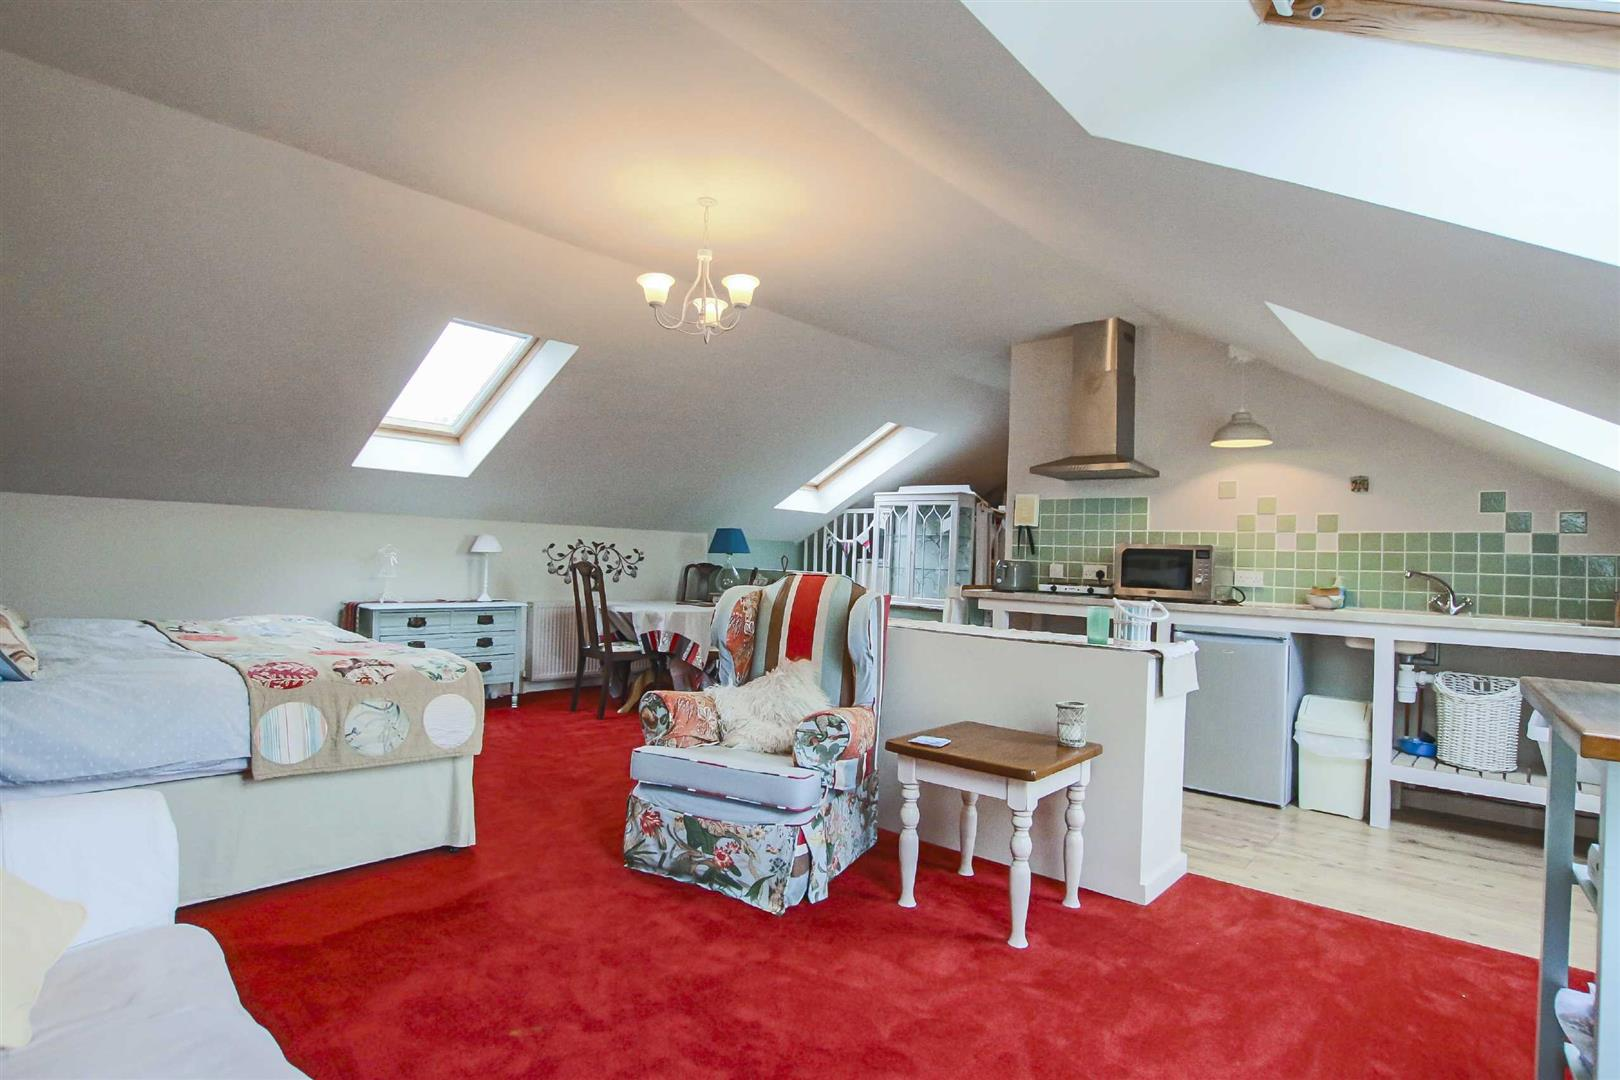 4 Bedroom Semi-detached House For Sale - Image 25